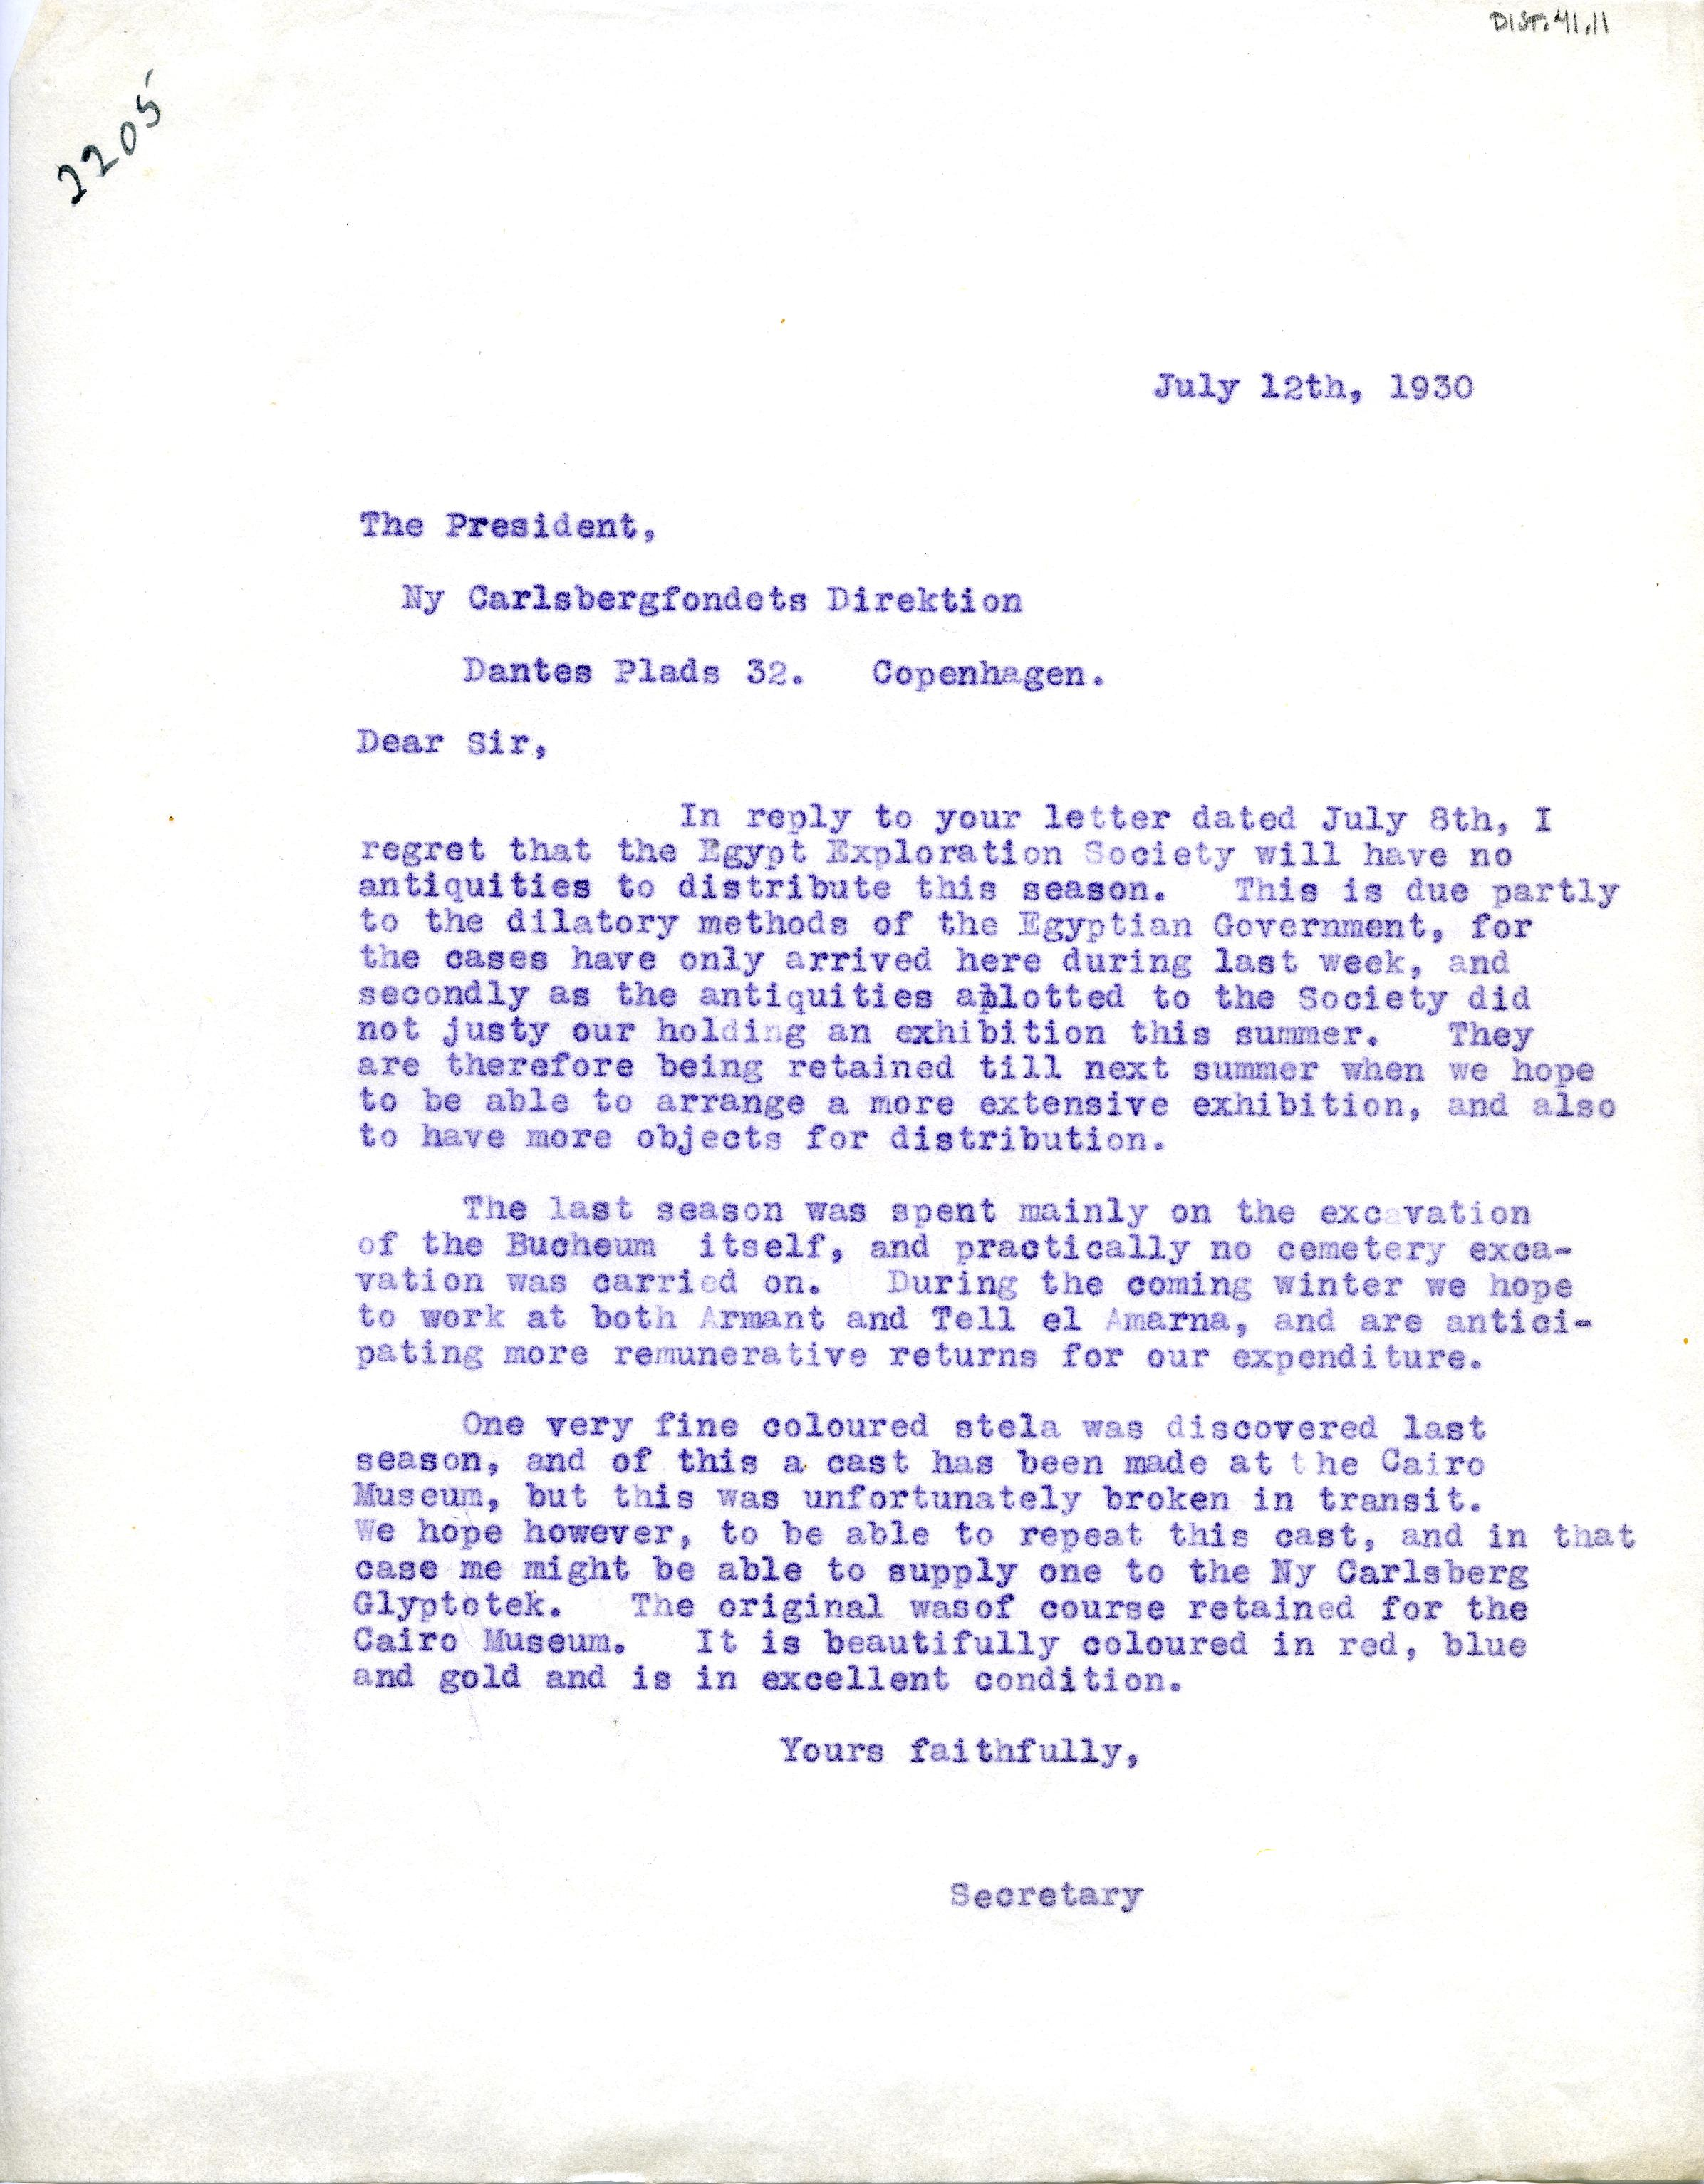 1922-76 Miscellaneous correspondence with museums DIST.41.11